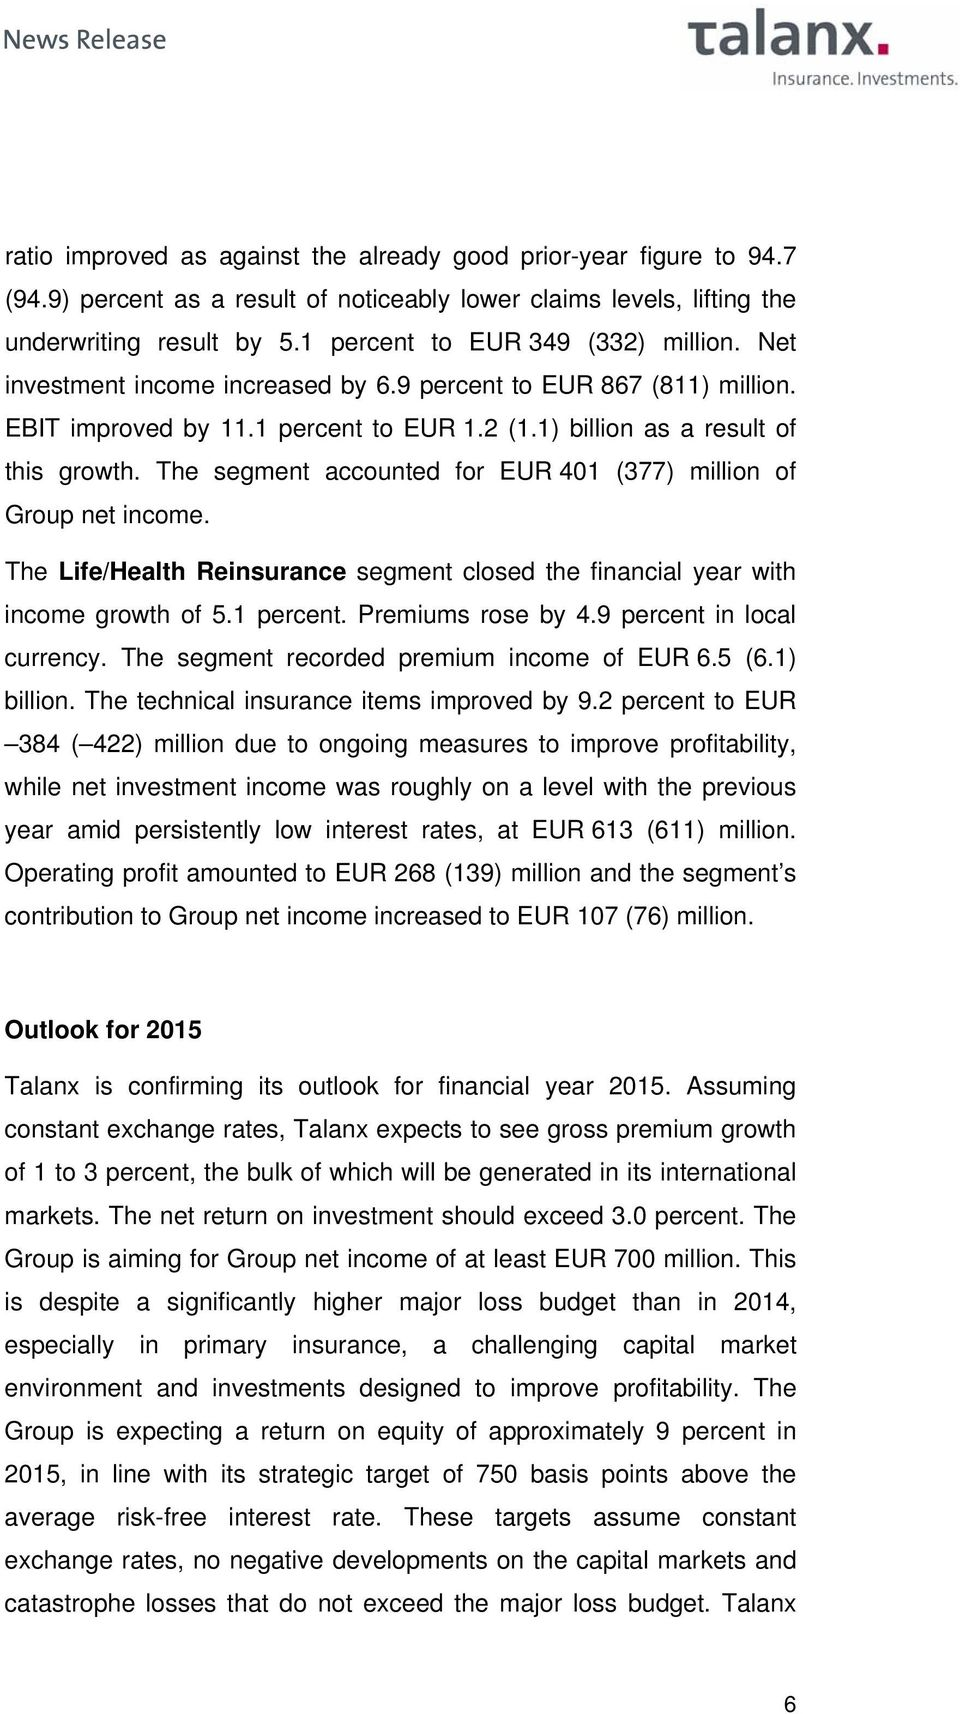 The segment accounted for EUR 401 (377) million of Group net income. The Life/Health Reinsurance segment closed the financial year with income growth of 5.1 percent. Premiums rose by 4.